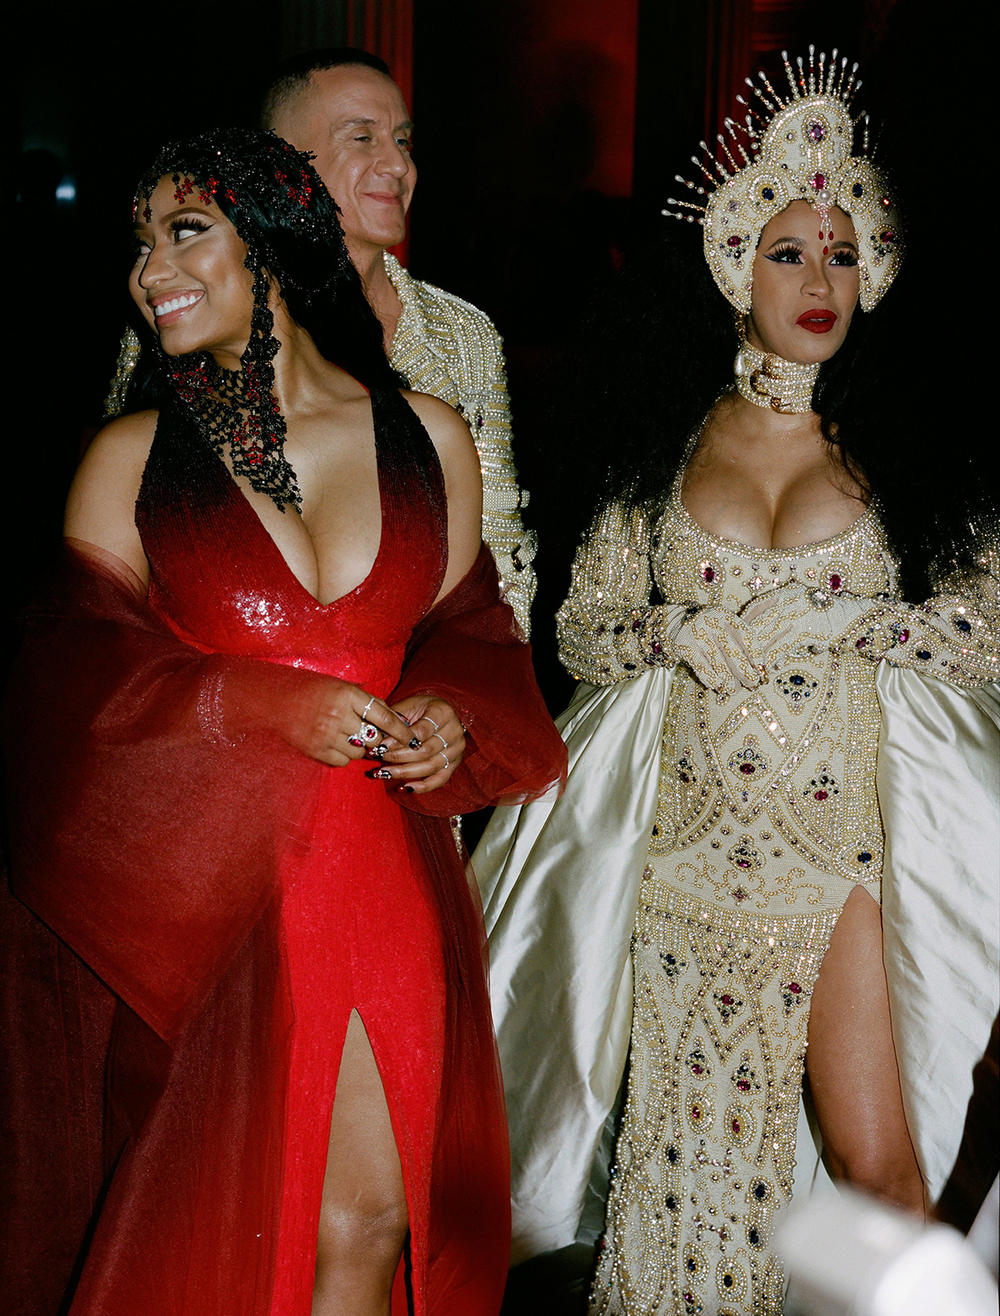 Met Gala 2018 Cardi B Nicki Minaj Candid Film Photo